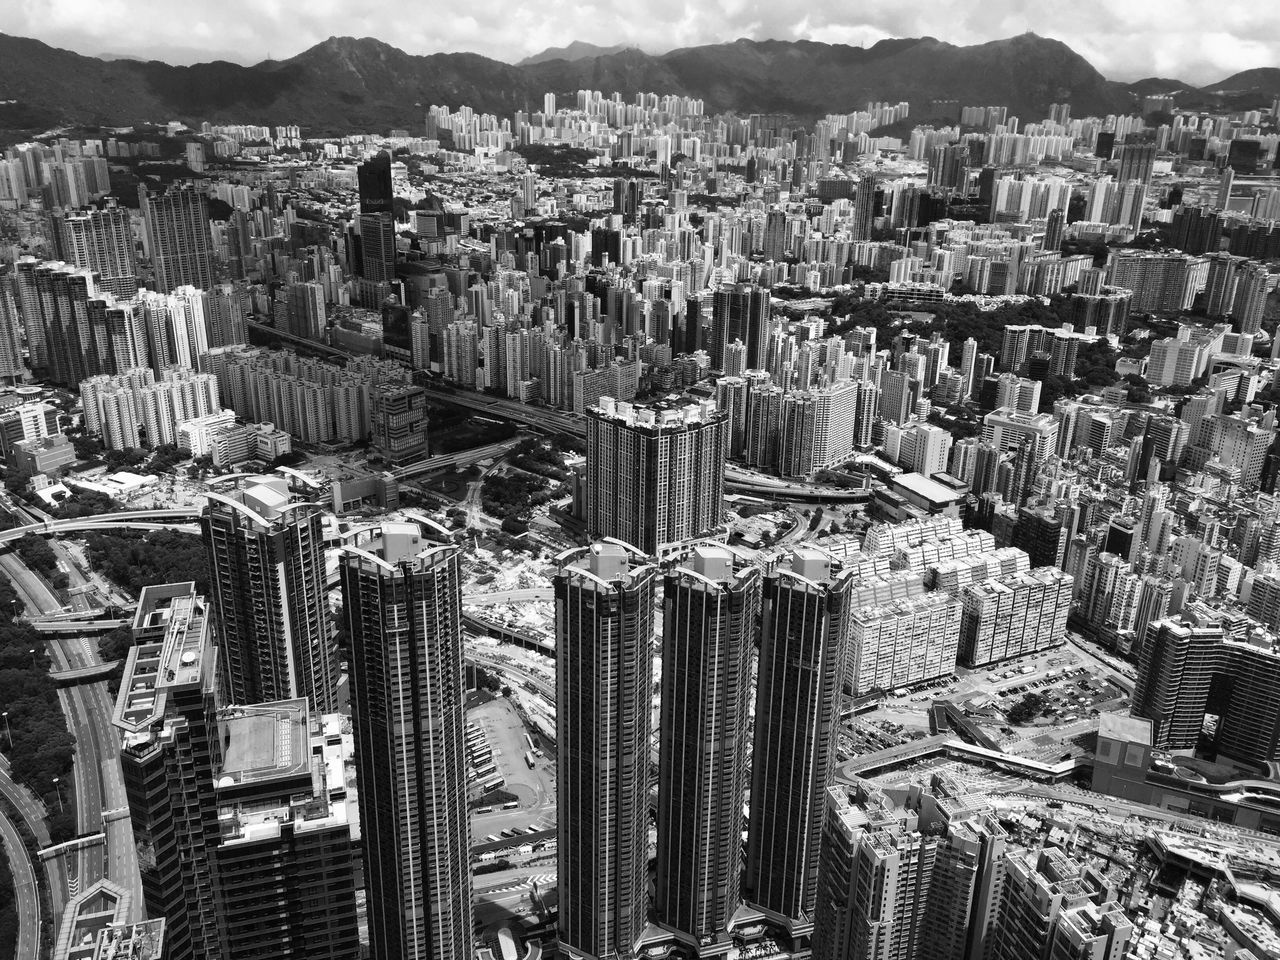 Skyscraper City Cityscape Tall - High Tower Aerial View Urban Skyline HongKong Panoramic Sky100 Blackandwhite Bnw City View  Fascinating